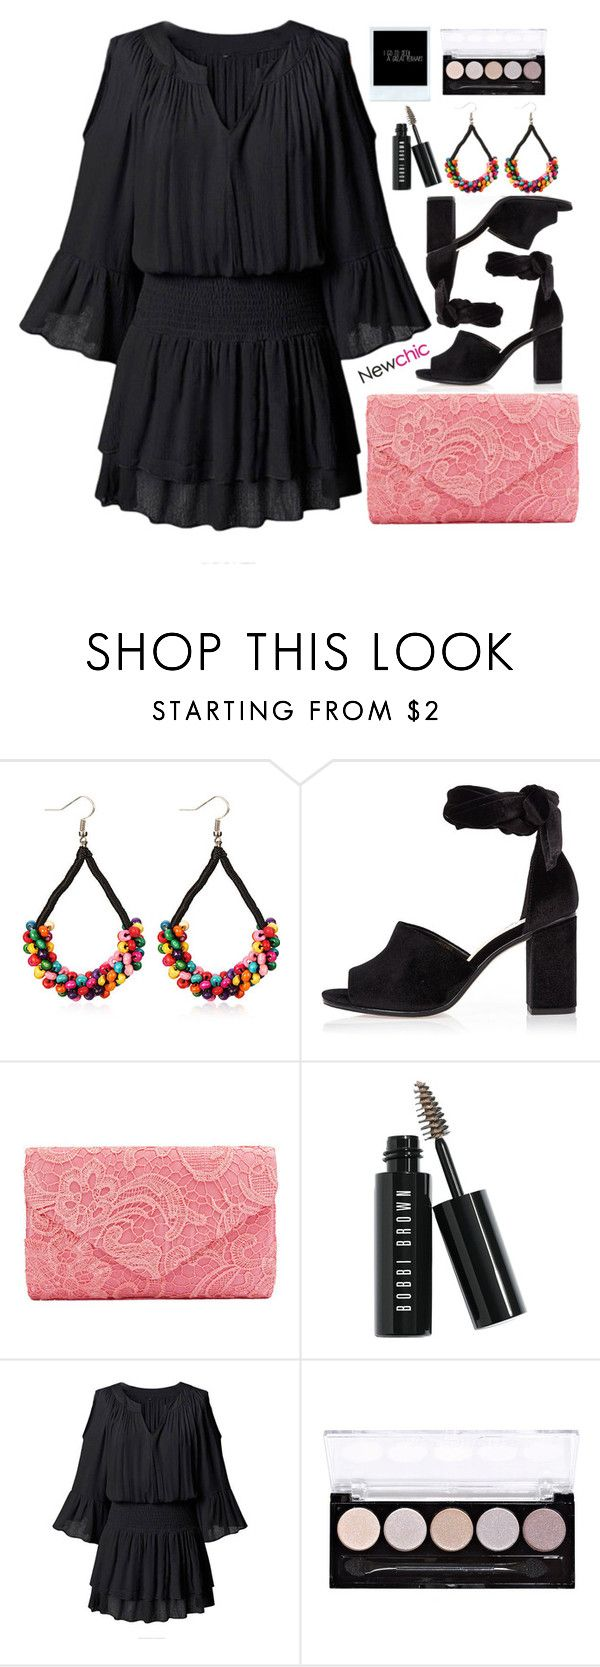 """""""Newchic 2/10 - Easy Dress"""" by alaria ❤ liked on Polyvore featuring River Island, Bobbi Brown Cosmetics, dress and easypeasy"""